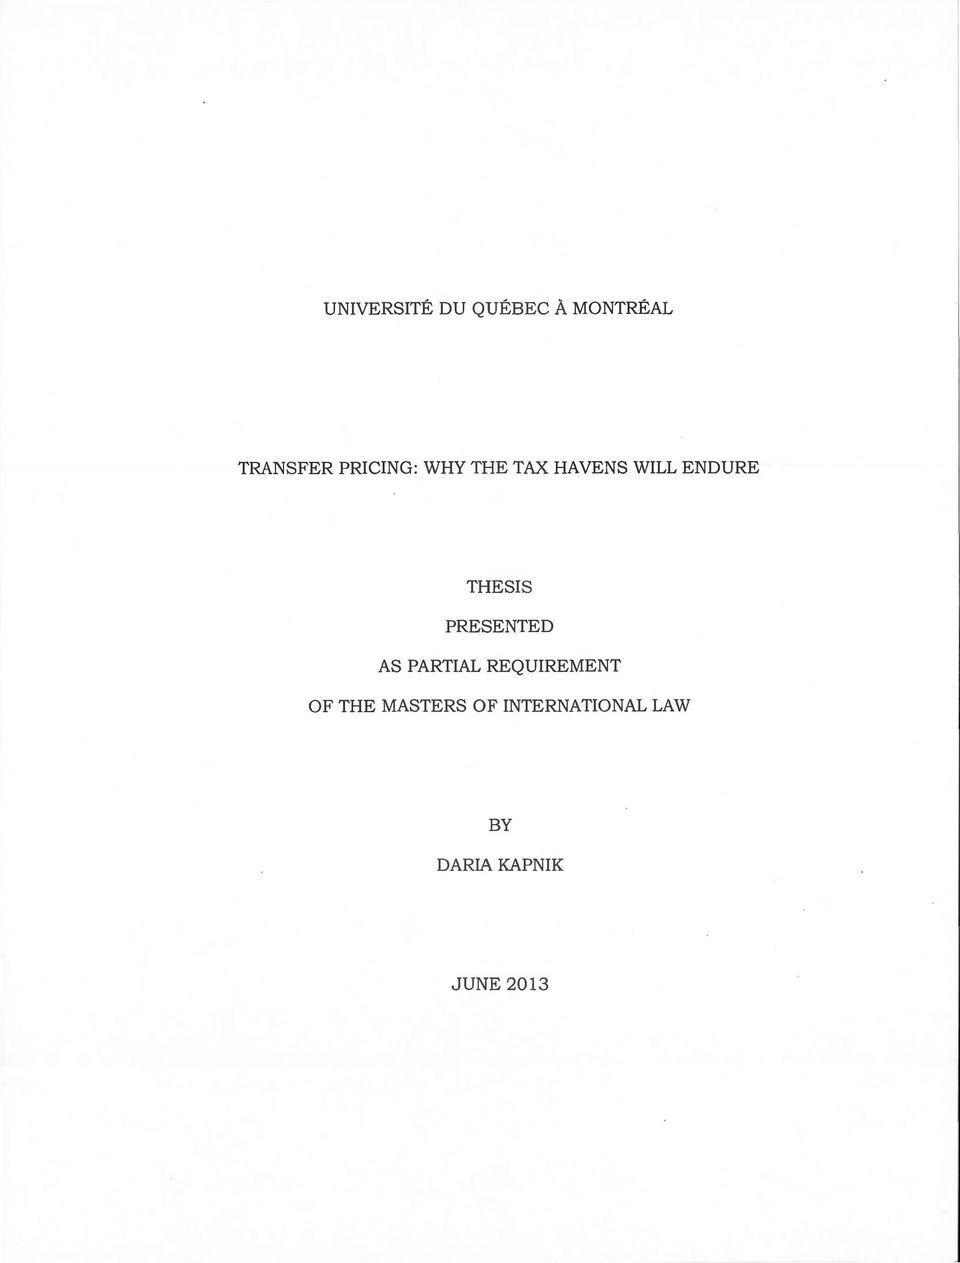 THESIS PRESENTED AS PARTIAL REQUIREMENT OF